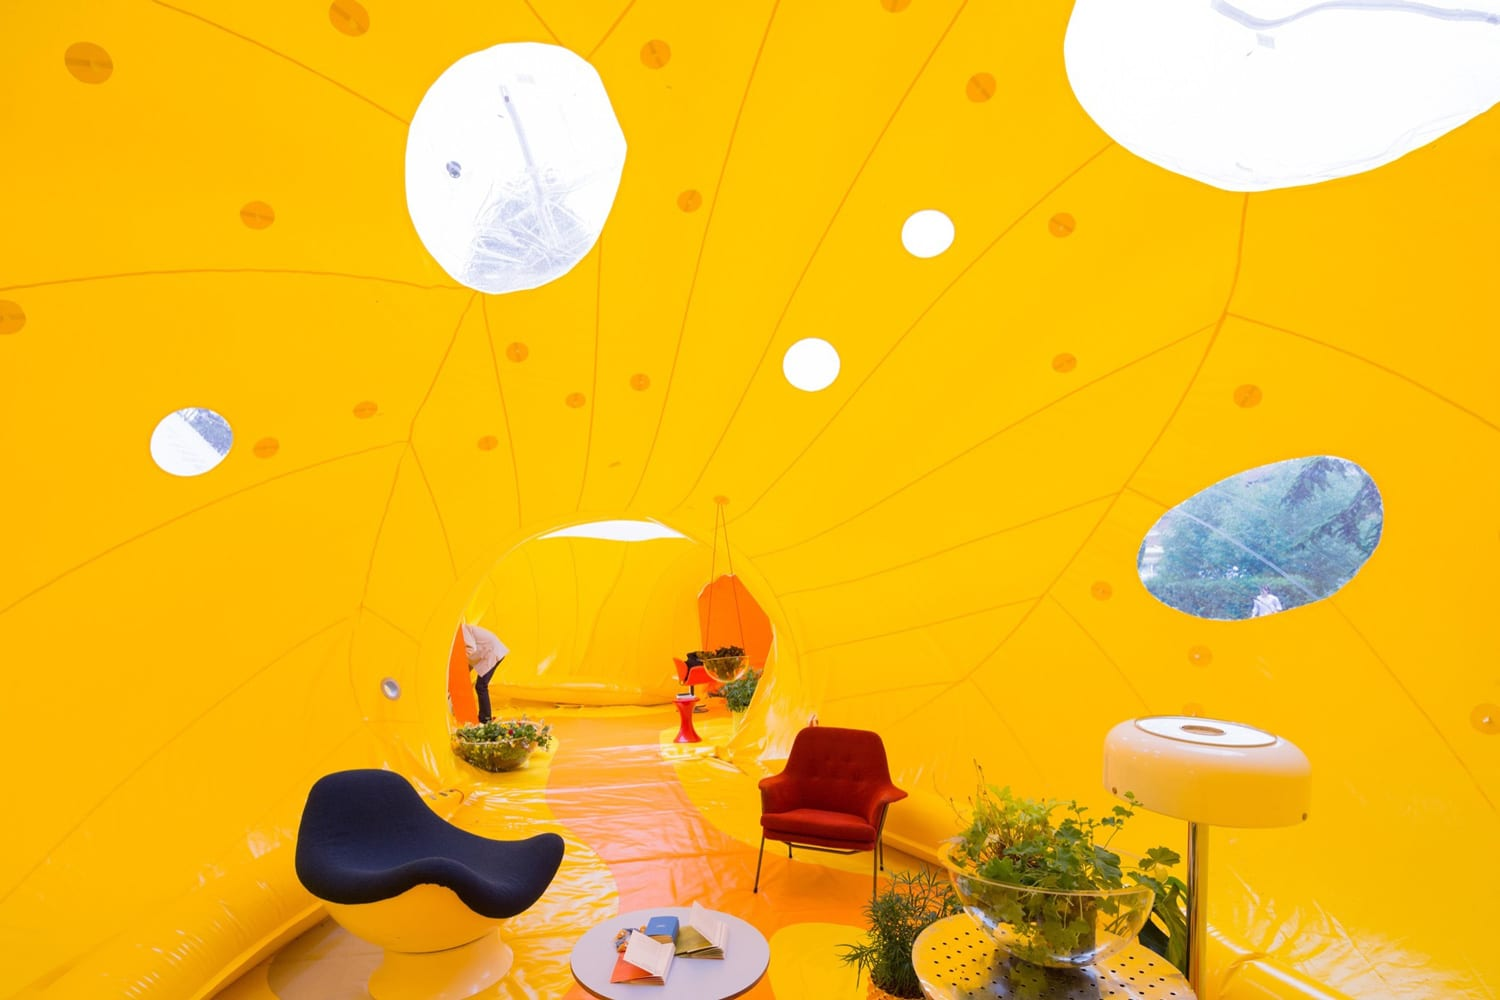 Second Dome by DOSIS | Yellowtrace